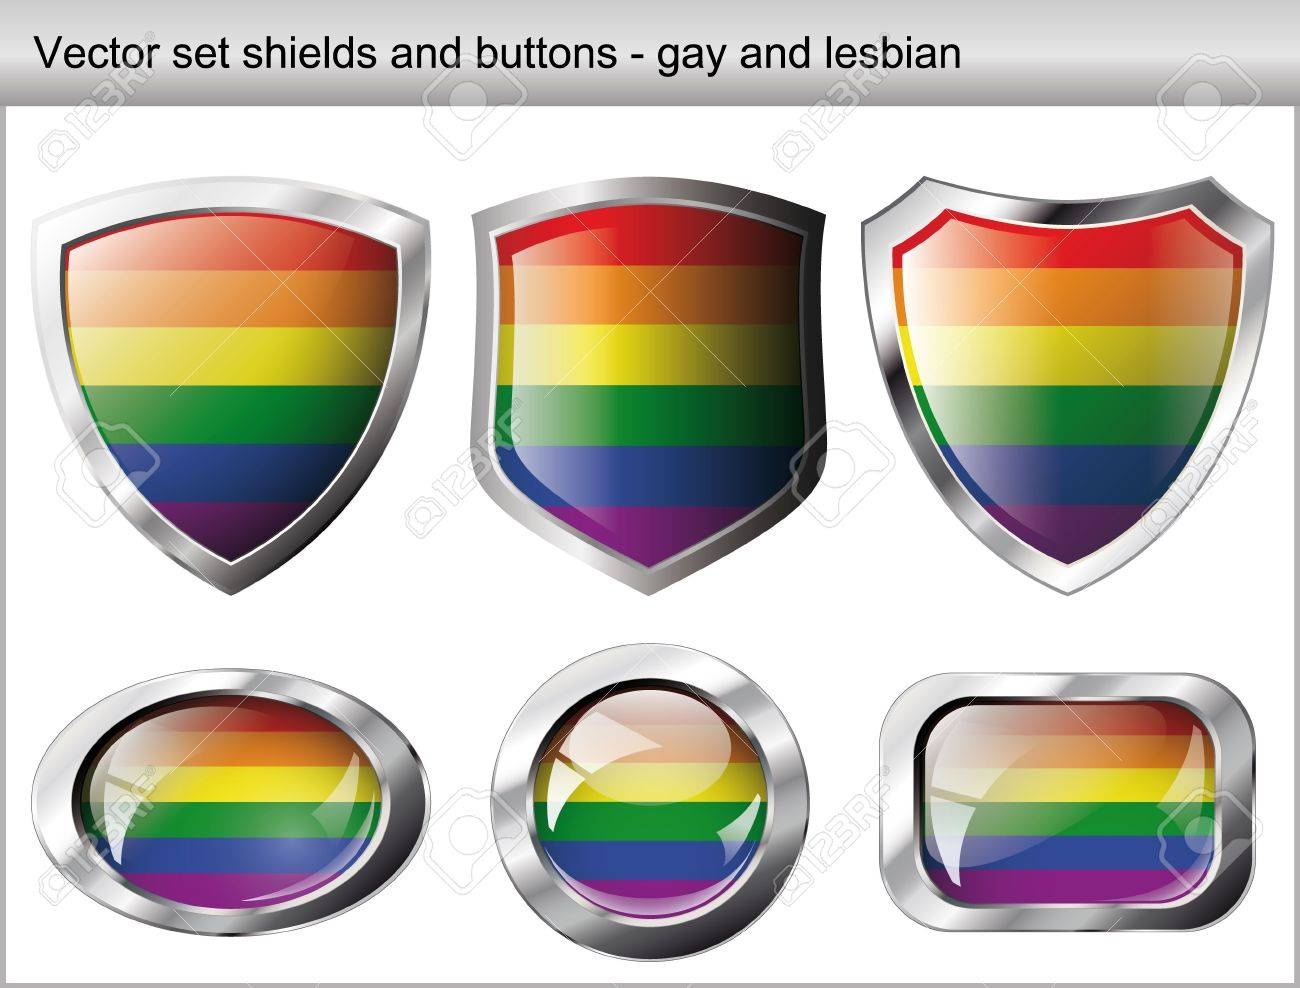 illustration set. Shiny and glossy shield and button for gay community. Abstract objects isolated on white background. Stock Vector - 6905343